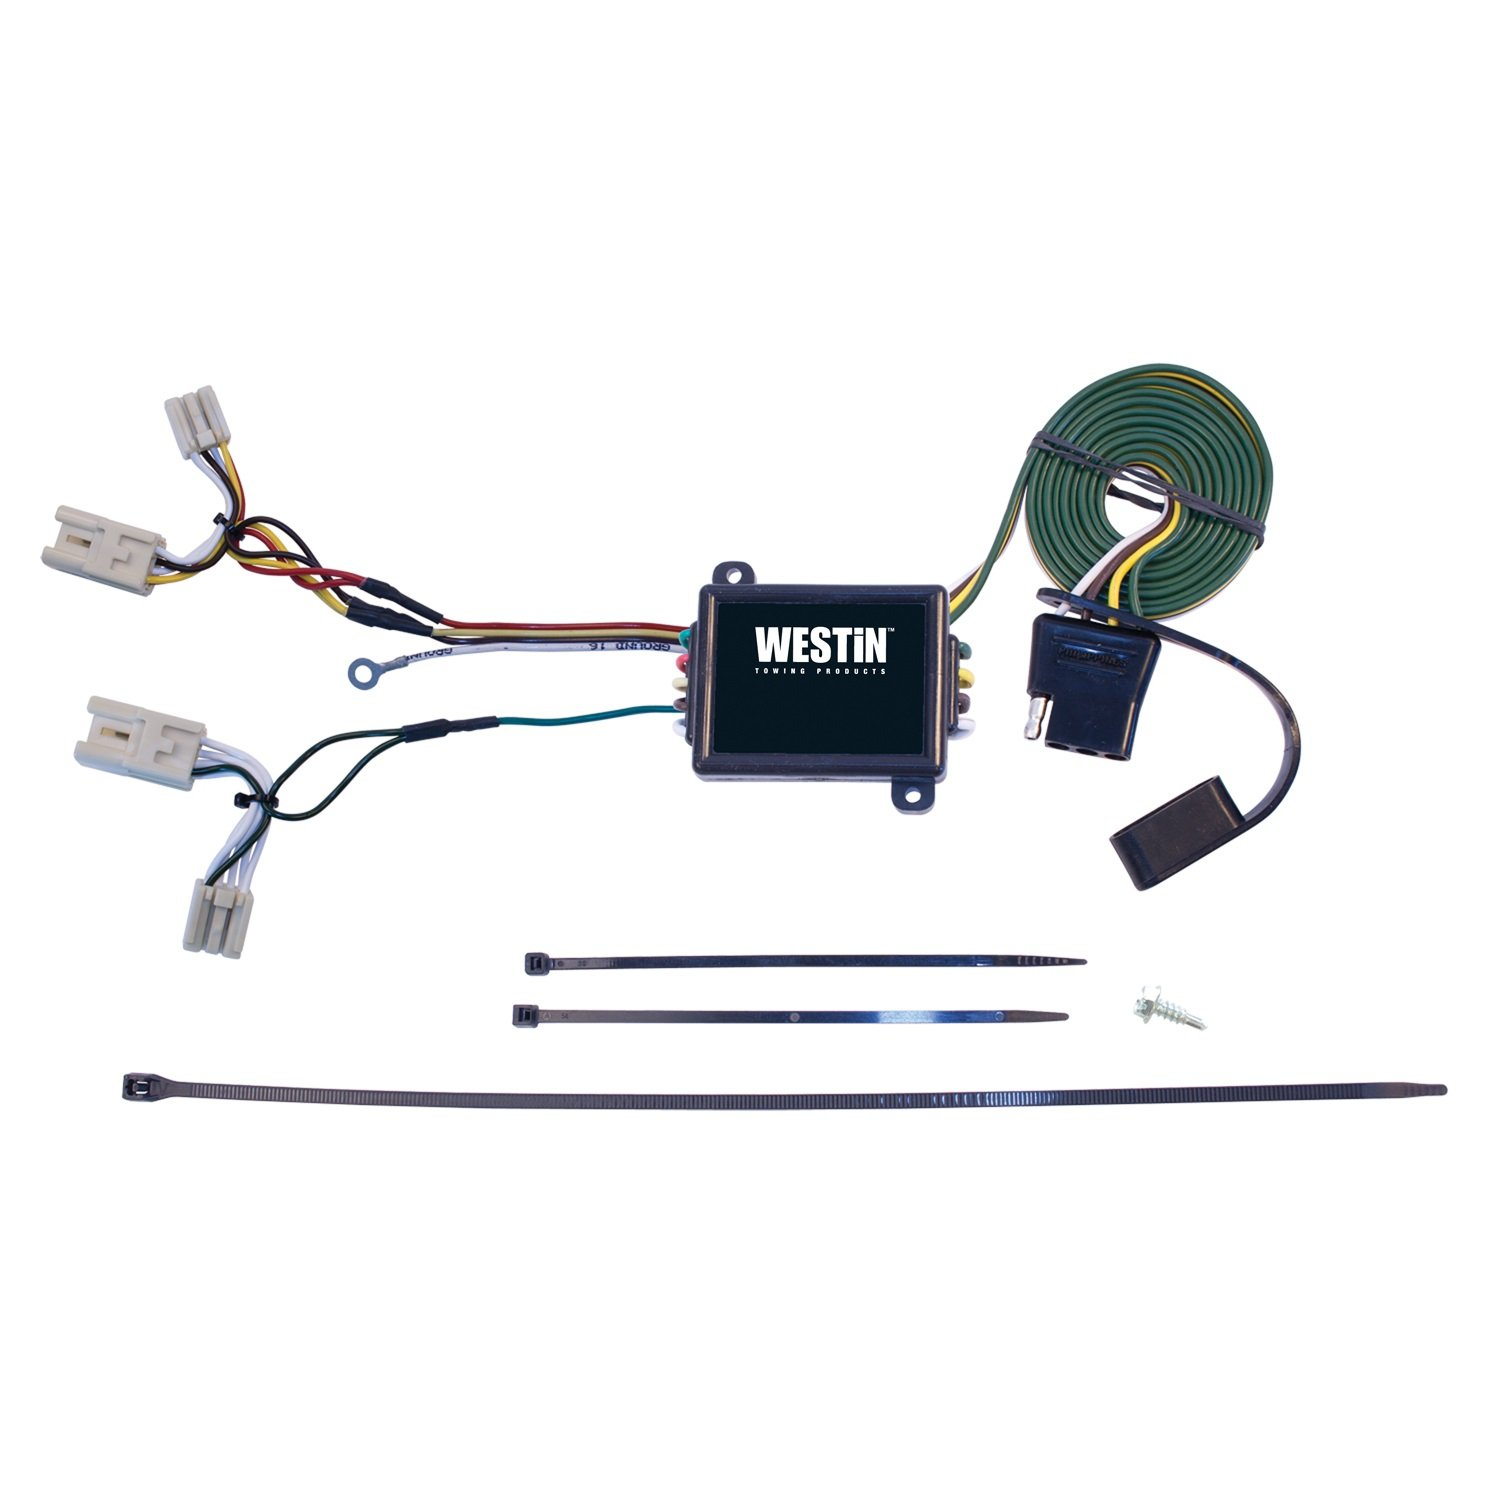 Westin 65-62050 T-Connector Harness